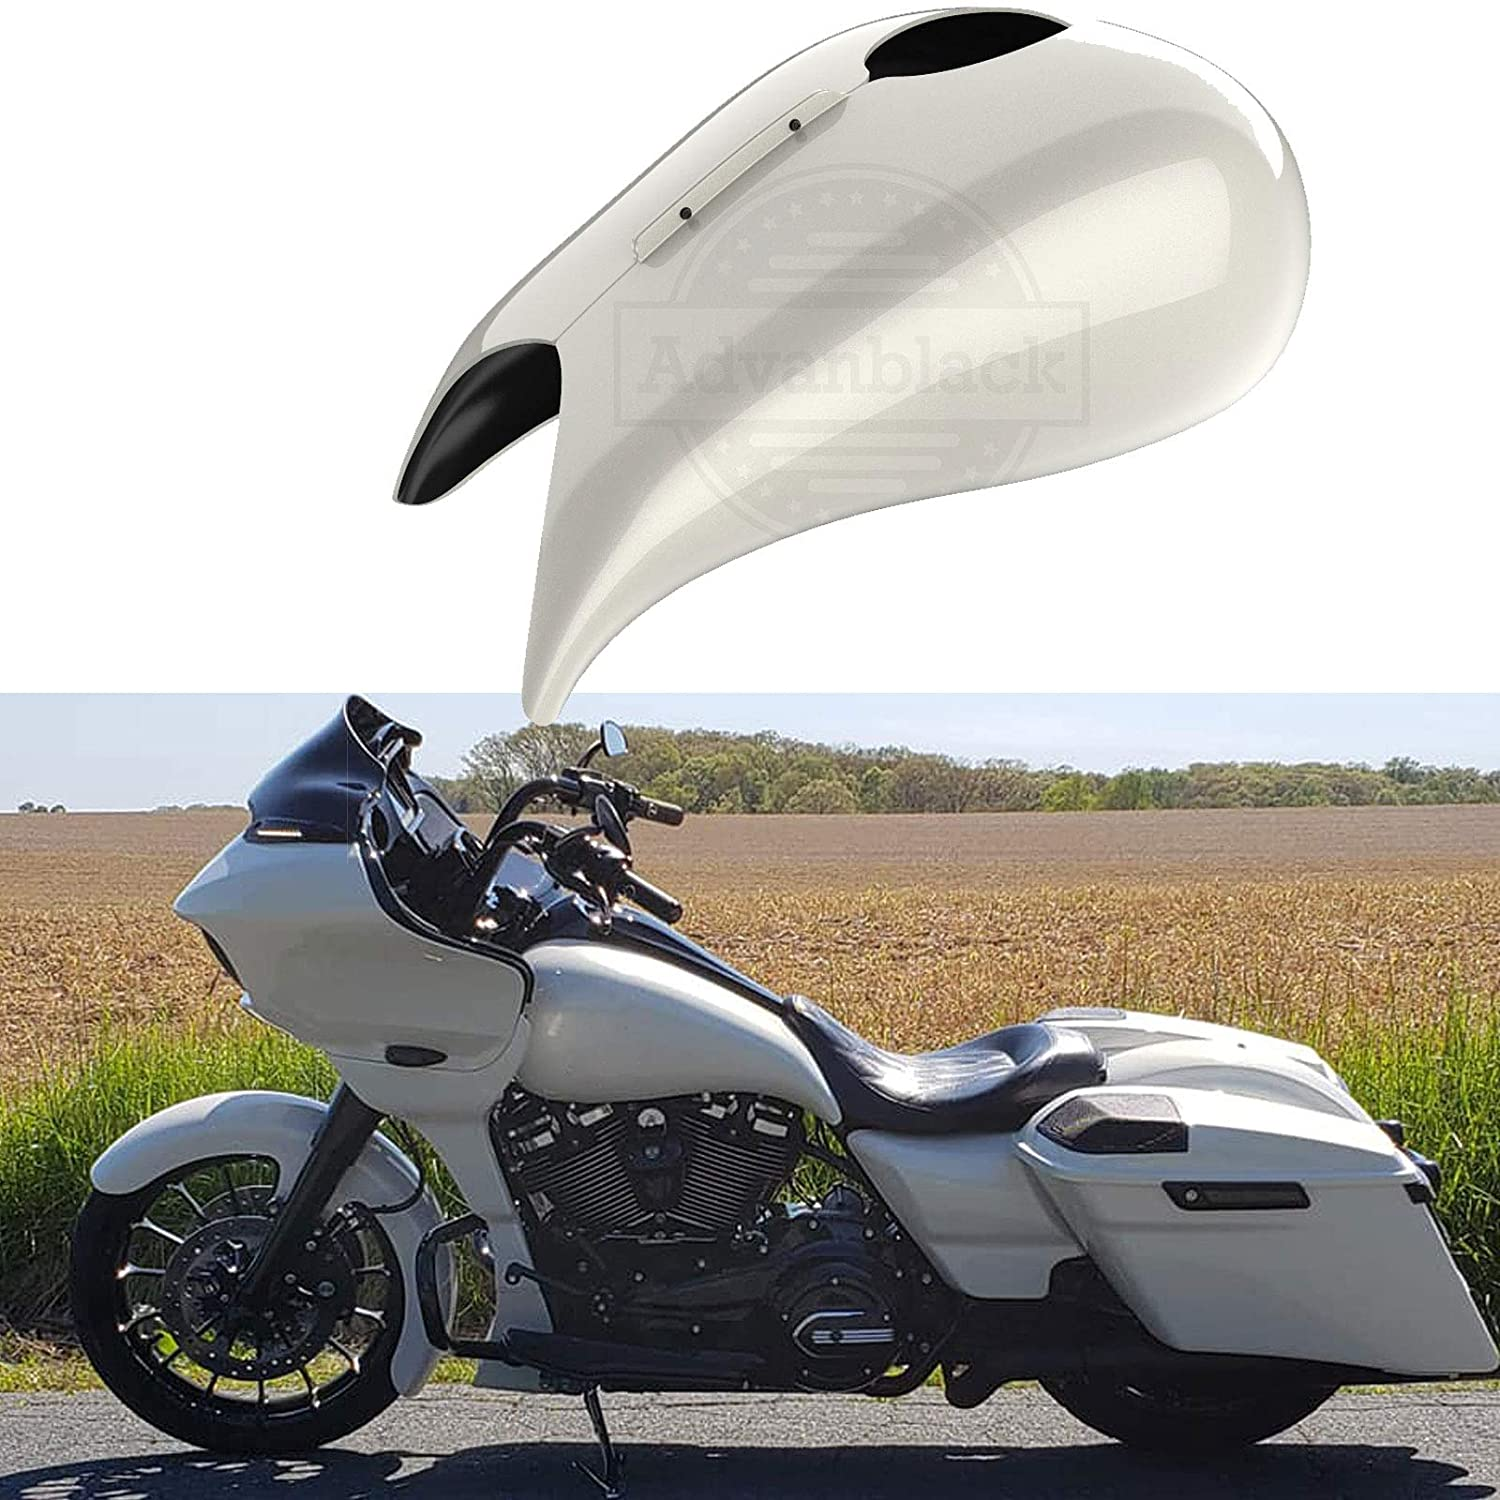 Advanblack Stretched Tank Covers Gallon Fuel Shrouds Fit for Harley Touring 2008-2020 Street Glide Road Glide (Bonneville Salt Pearl)